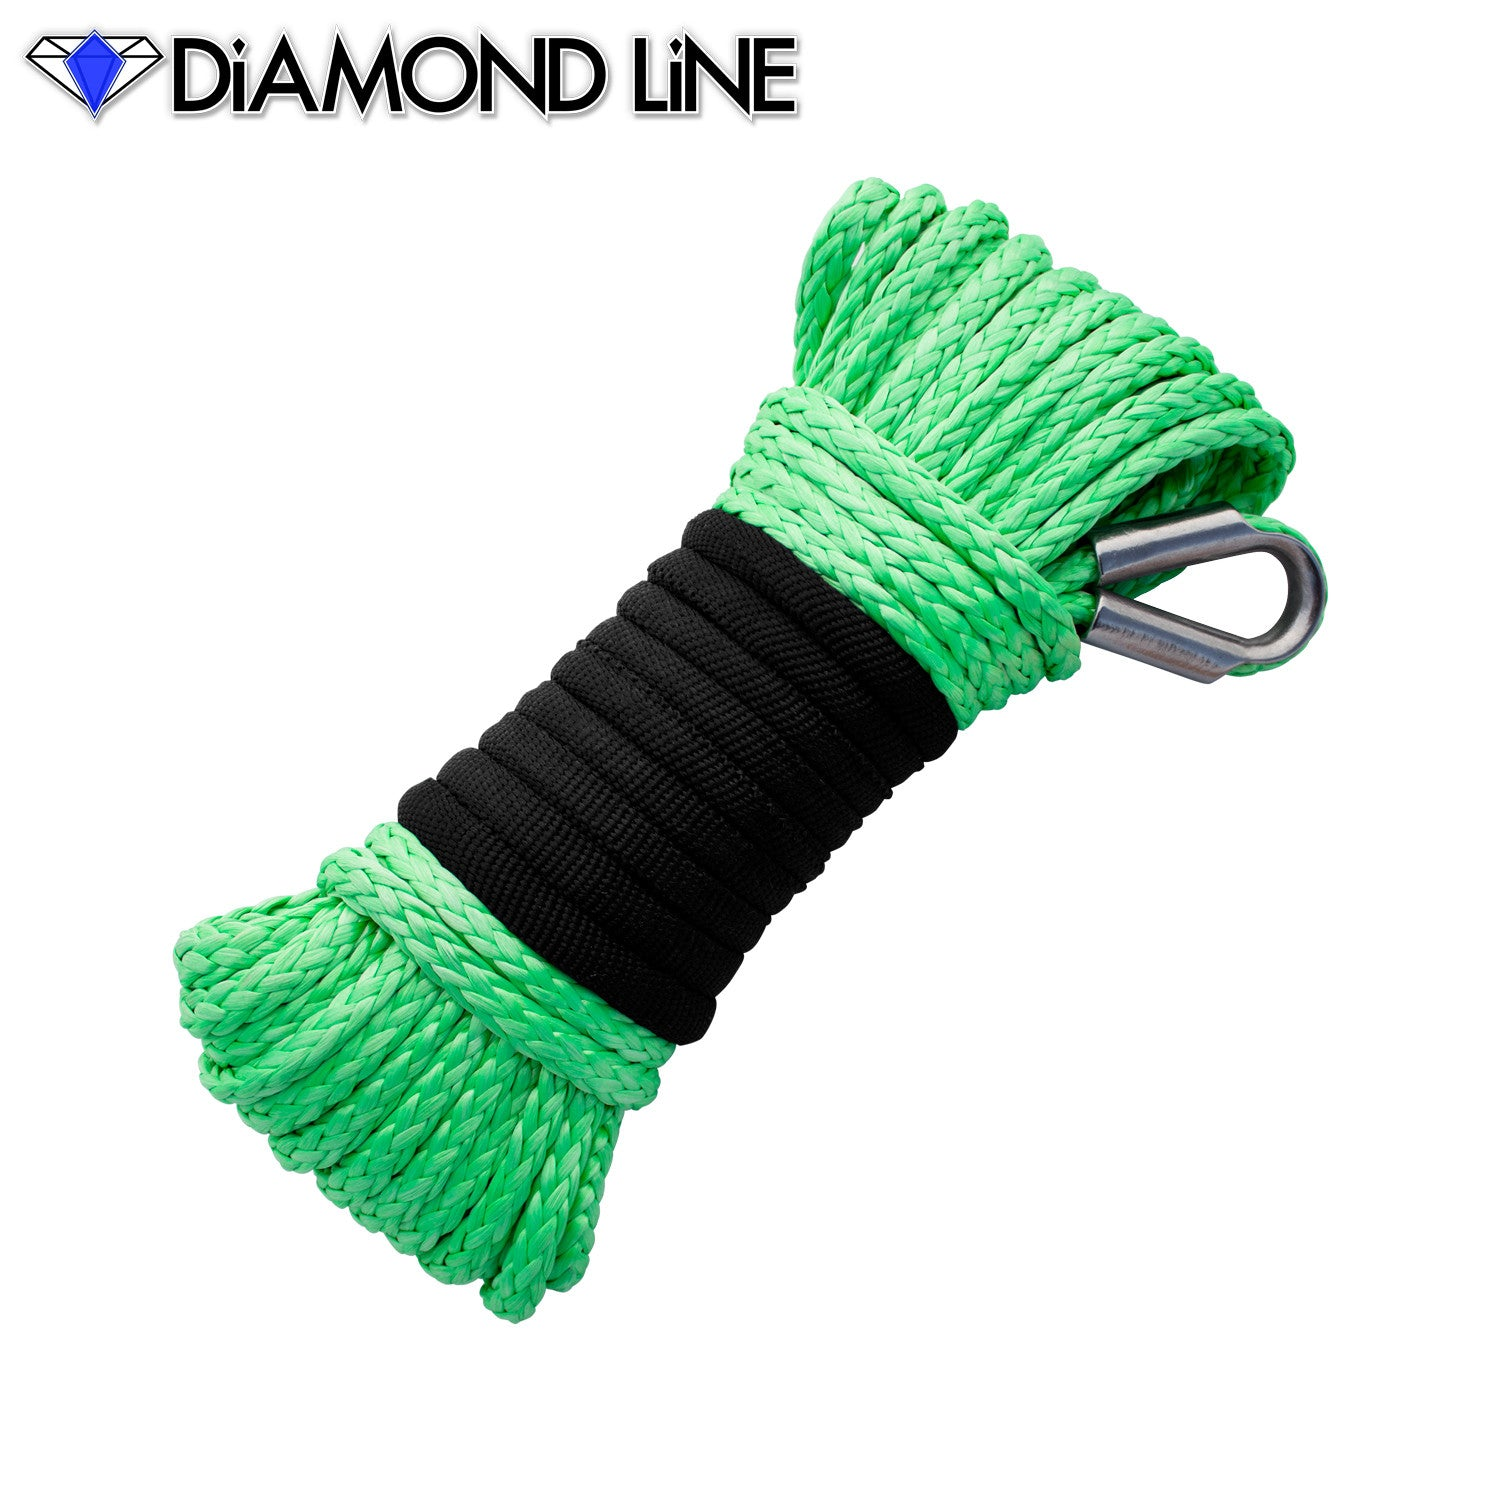 "3/16"" x 50' Diamond Line Winch Rope Mainline - Bright Green."